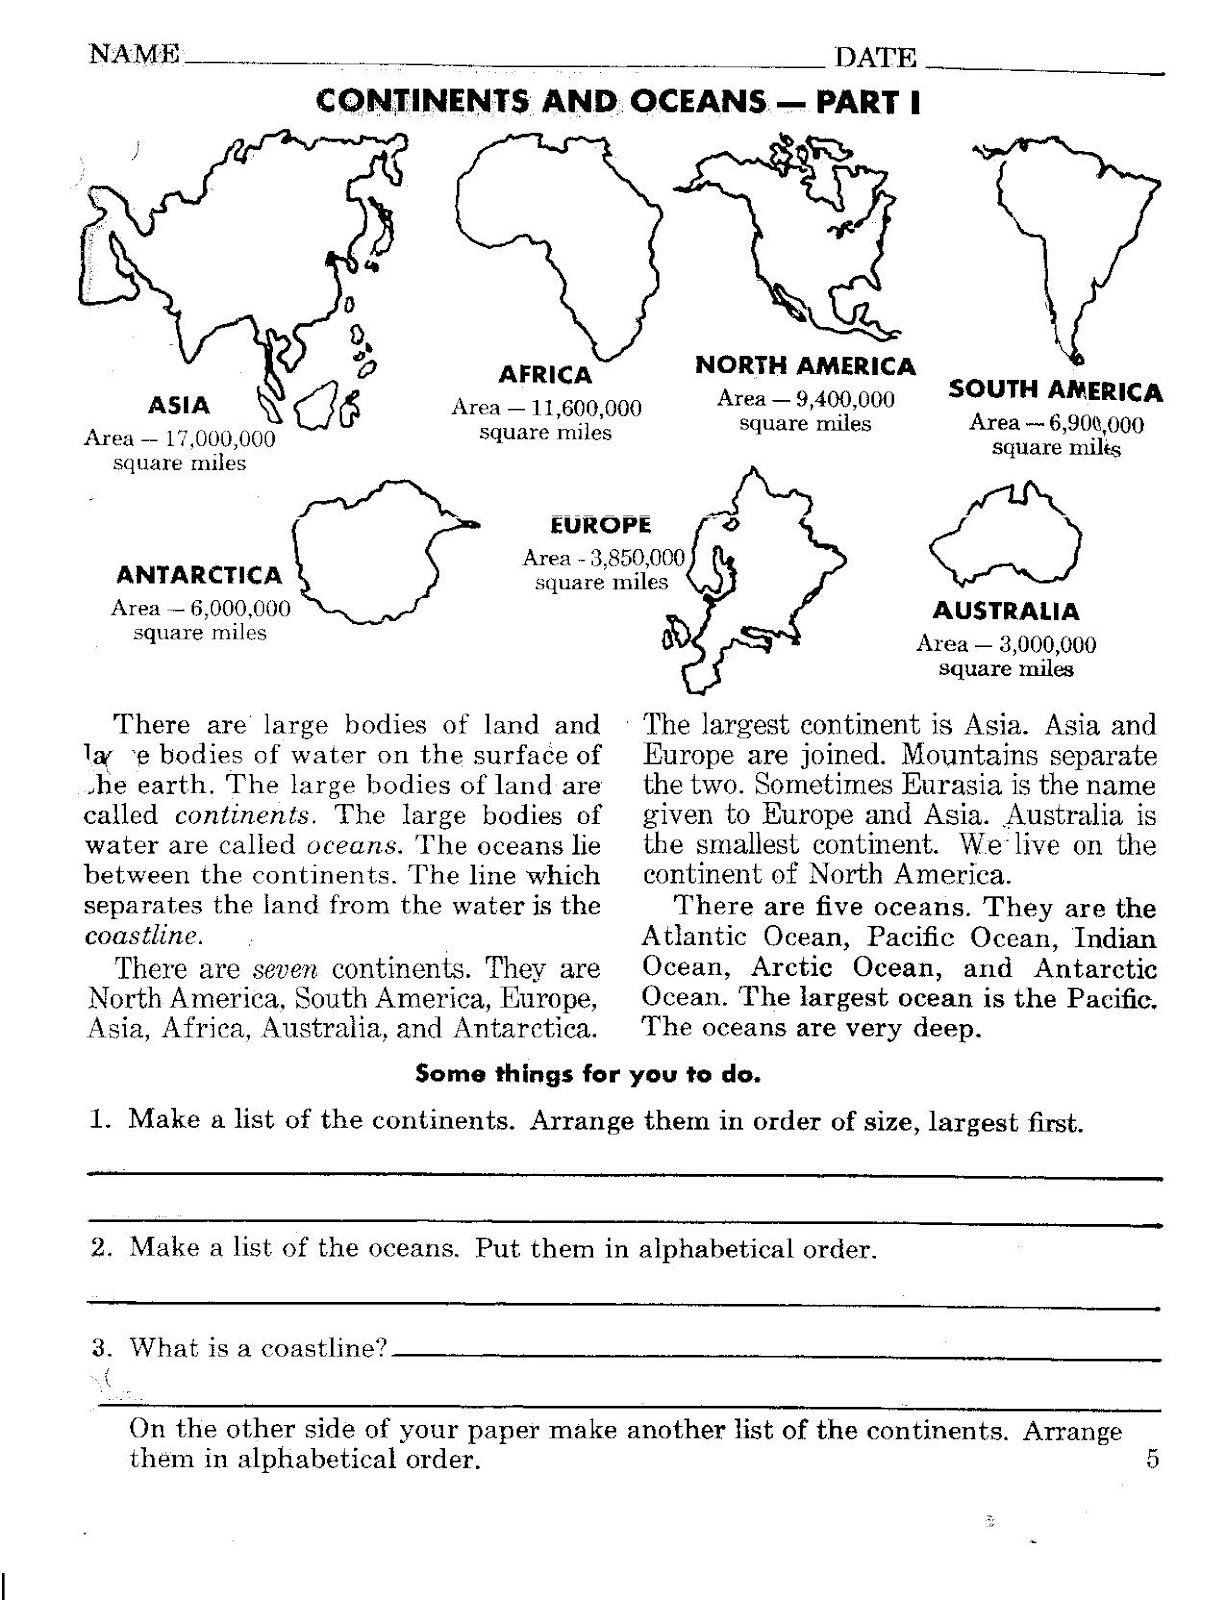 Oceans And Continents Worksheets Printable Continents And